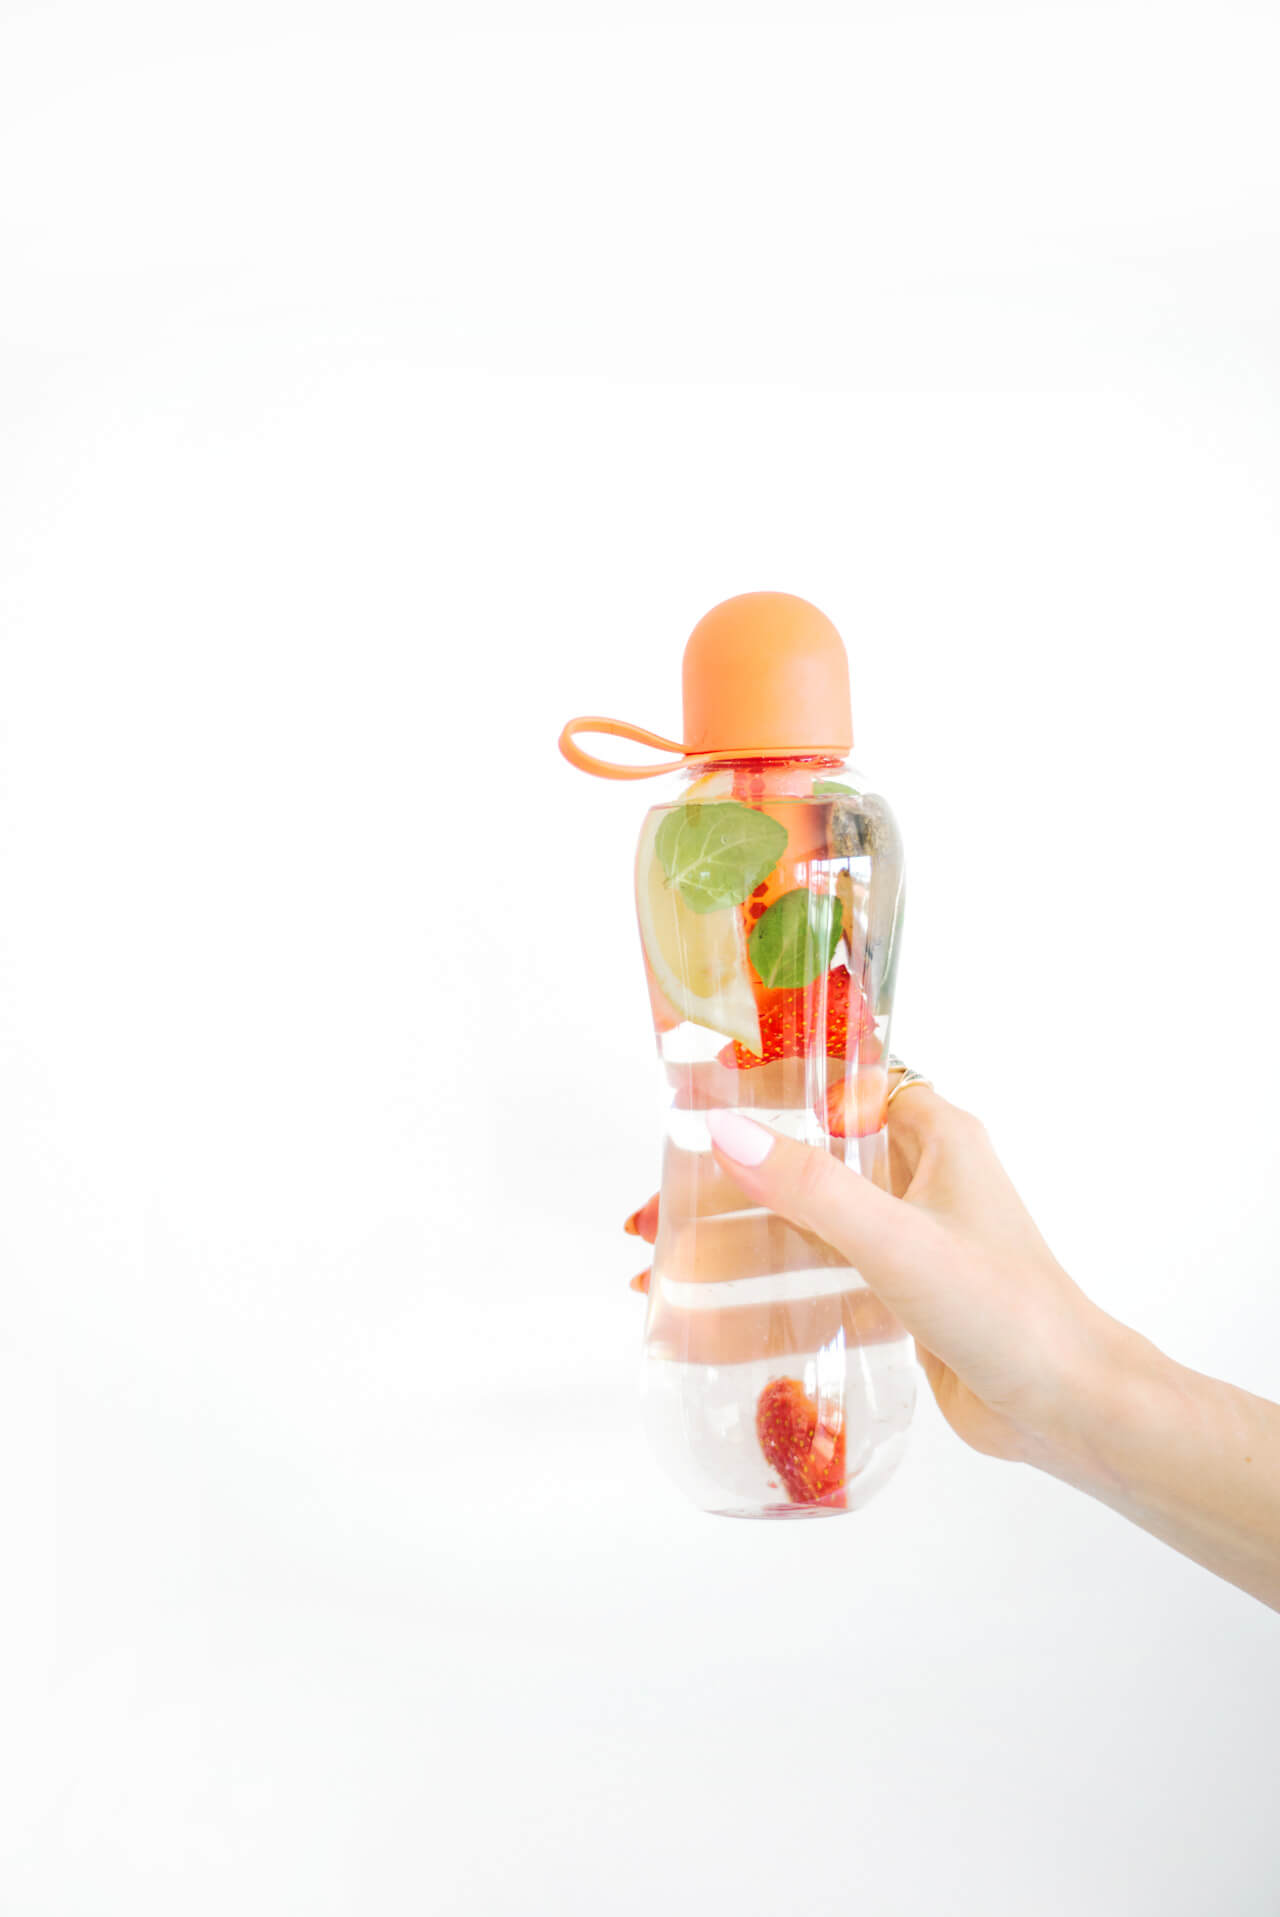 infused water that is a metabolism booster